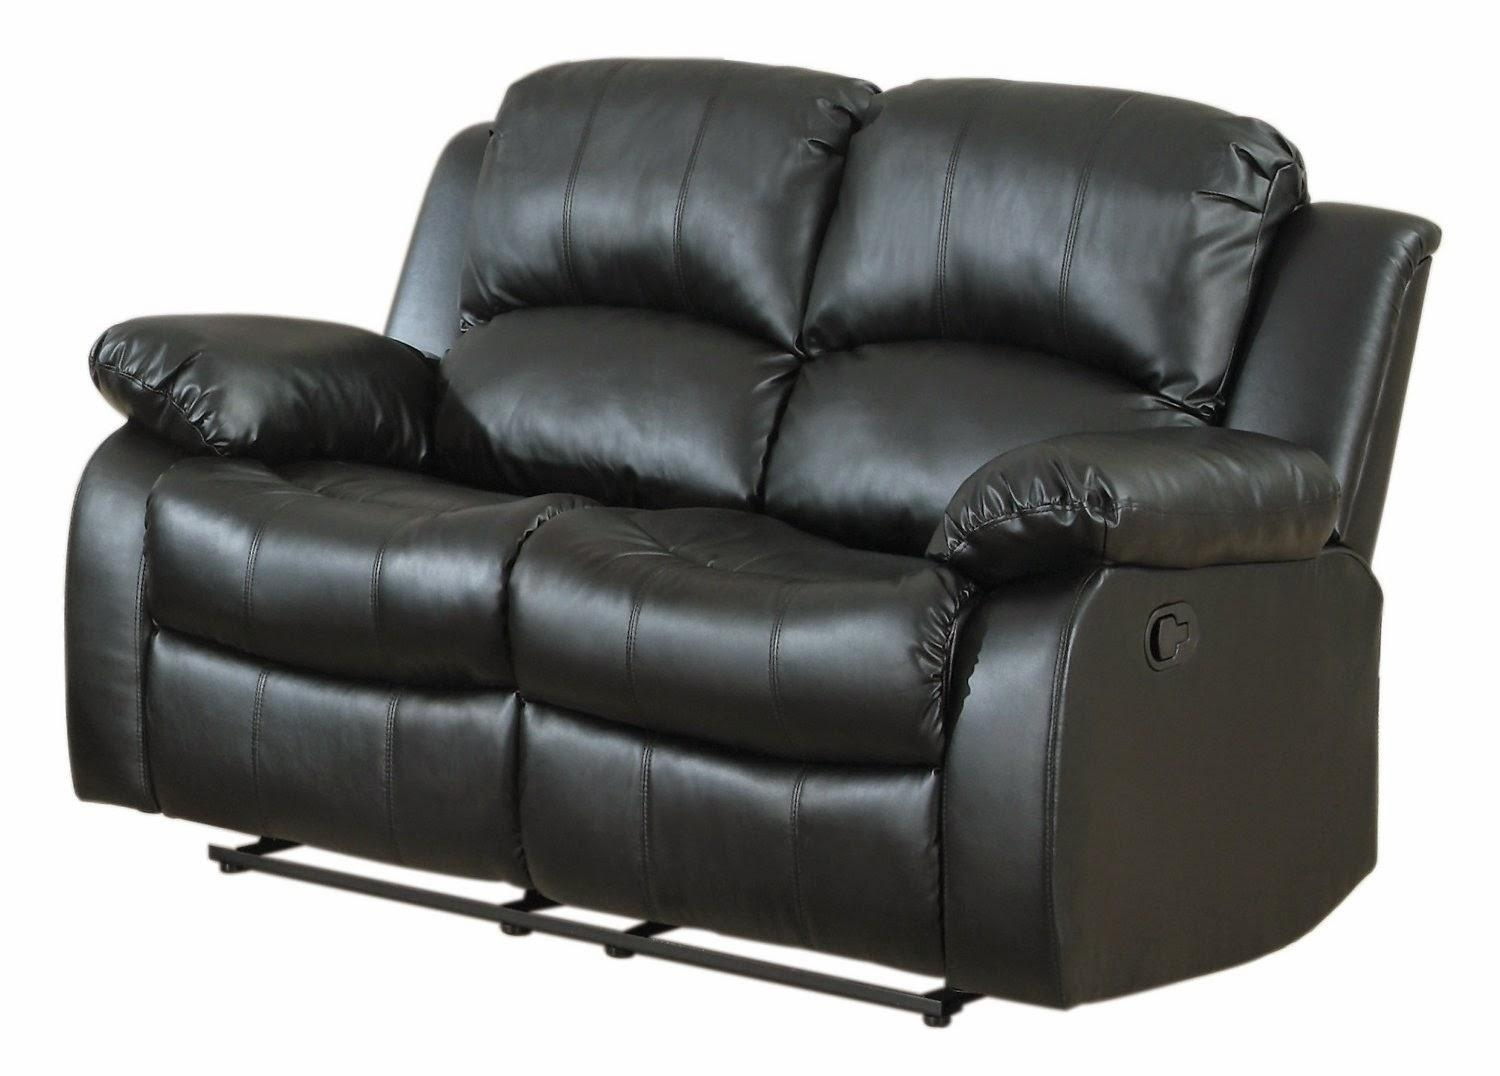 Sofas Center : Costco Leather Reclining Sofa Sofas And With Berkline Recliner Sofas (Image 9 of 20)